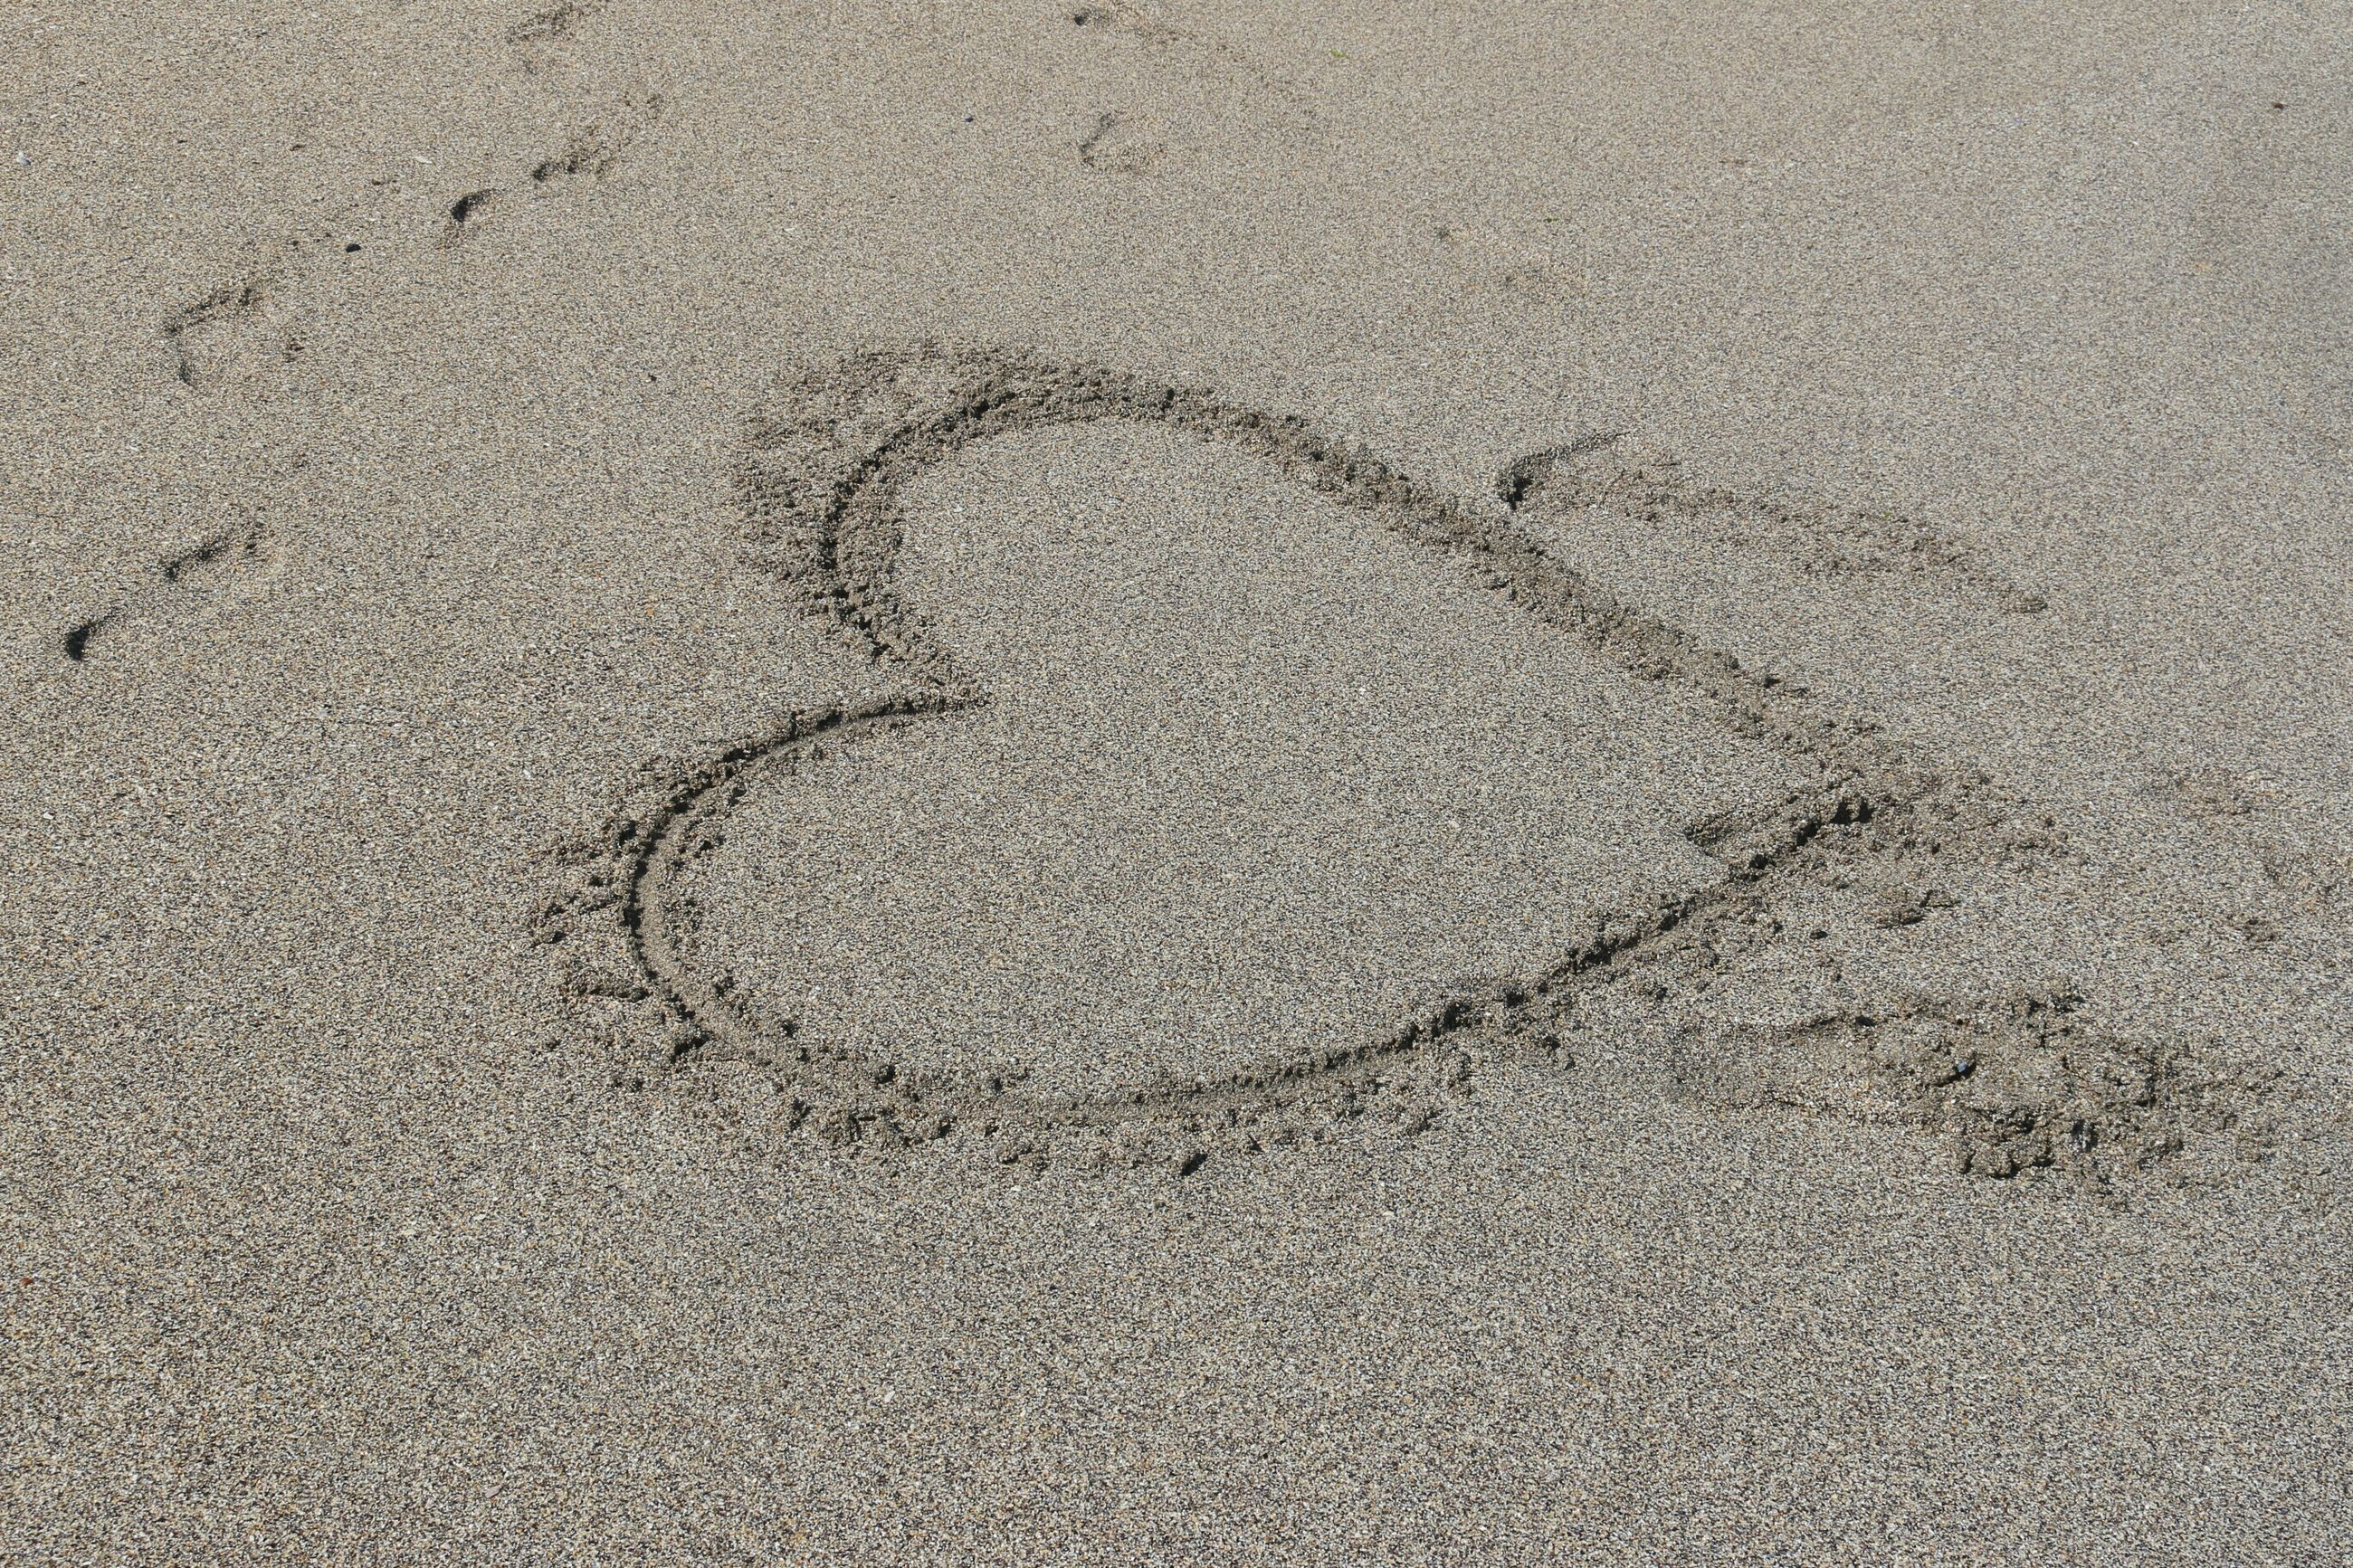 full frame, backgrounds, textured, high angle view, sand, pattern, close-up, footprint, beach, no people, day, outdoors, rough, heart shape, cracked, nature, detail, creativity, natural pattern, sunlight